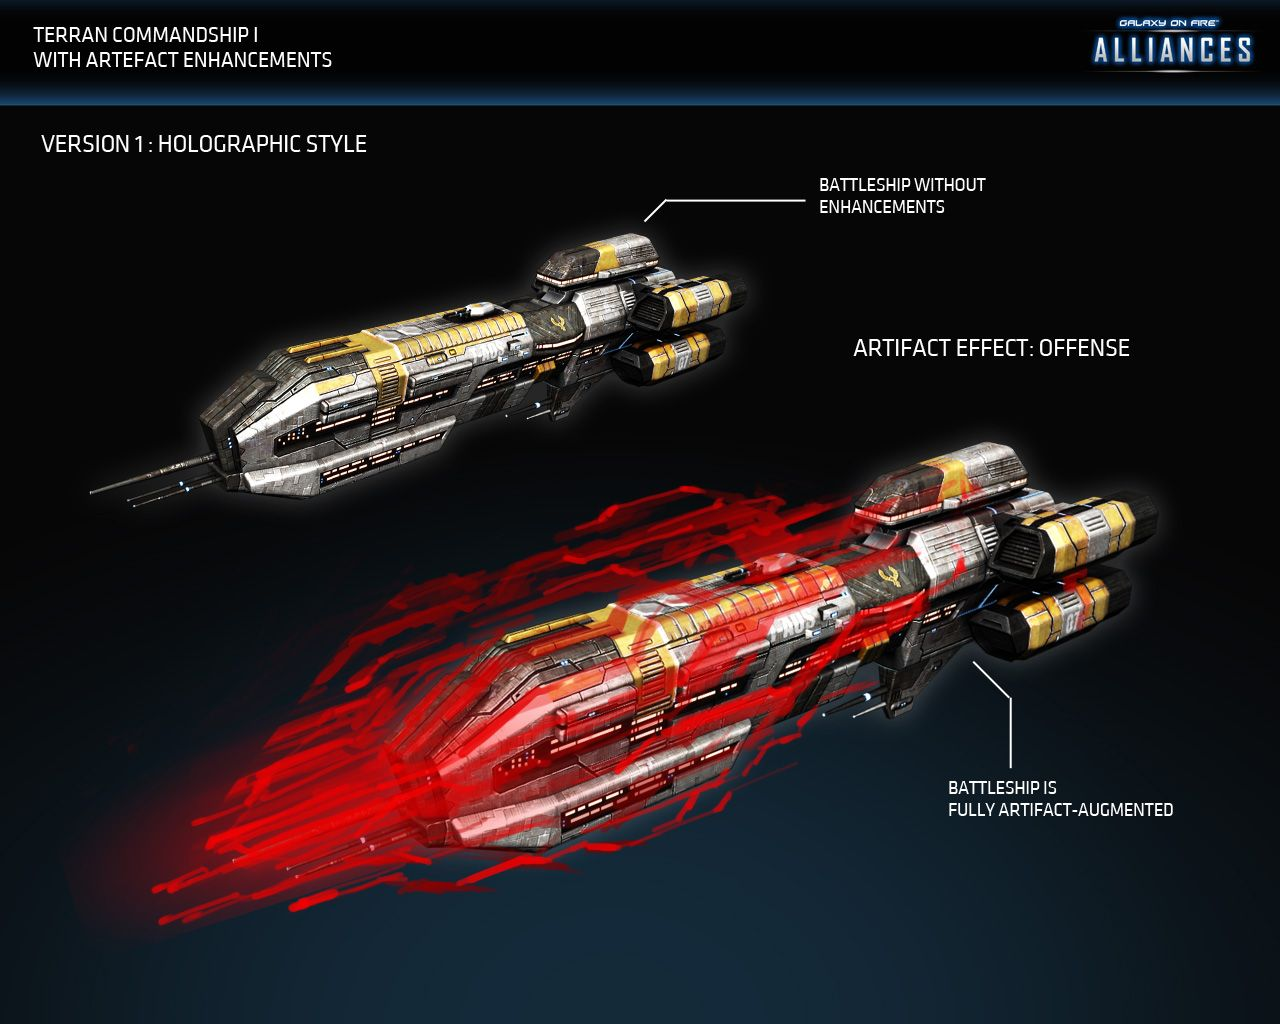 Galaxy on Fire: Alliances to bring free space-aged MMO real-time